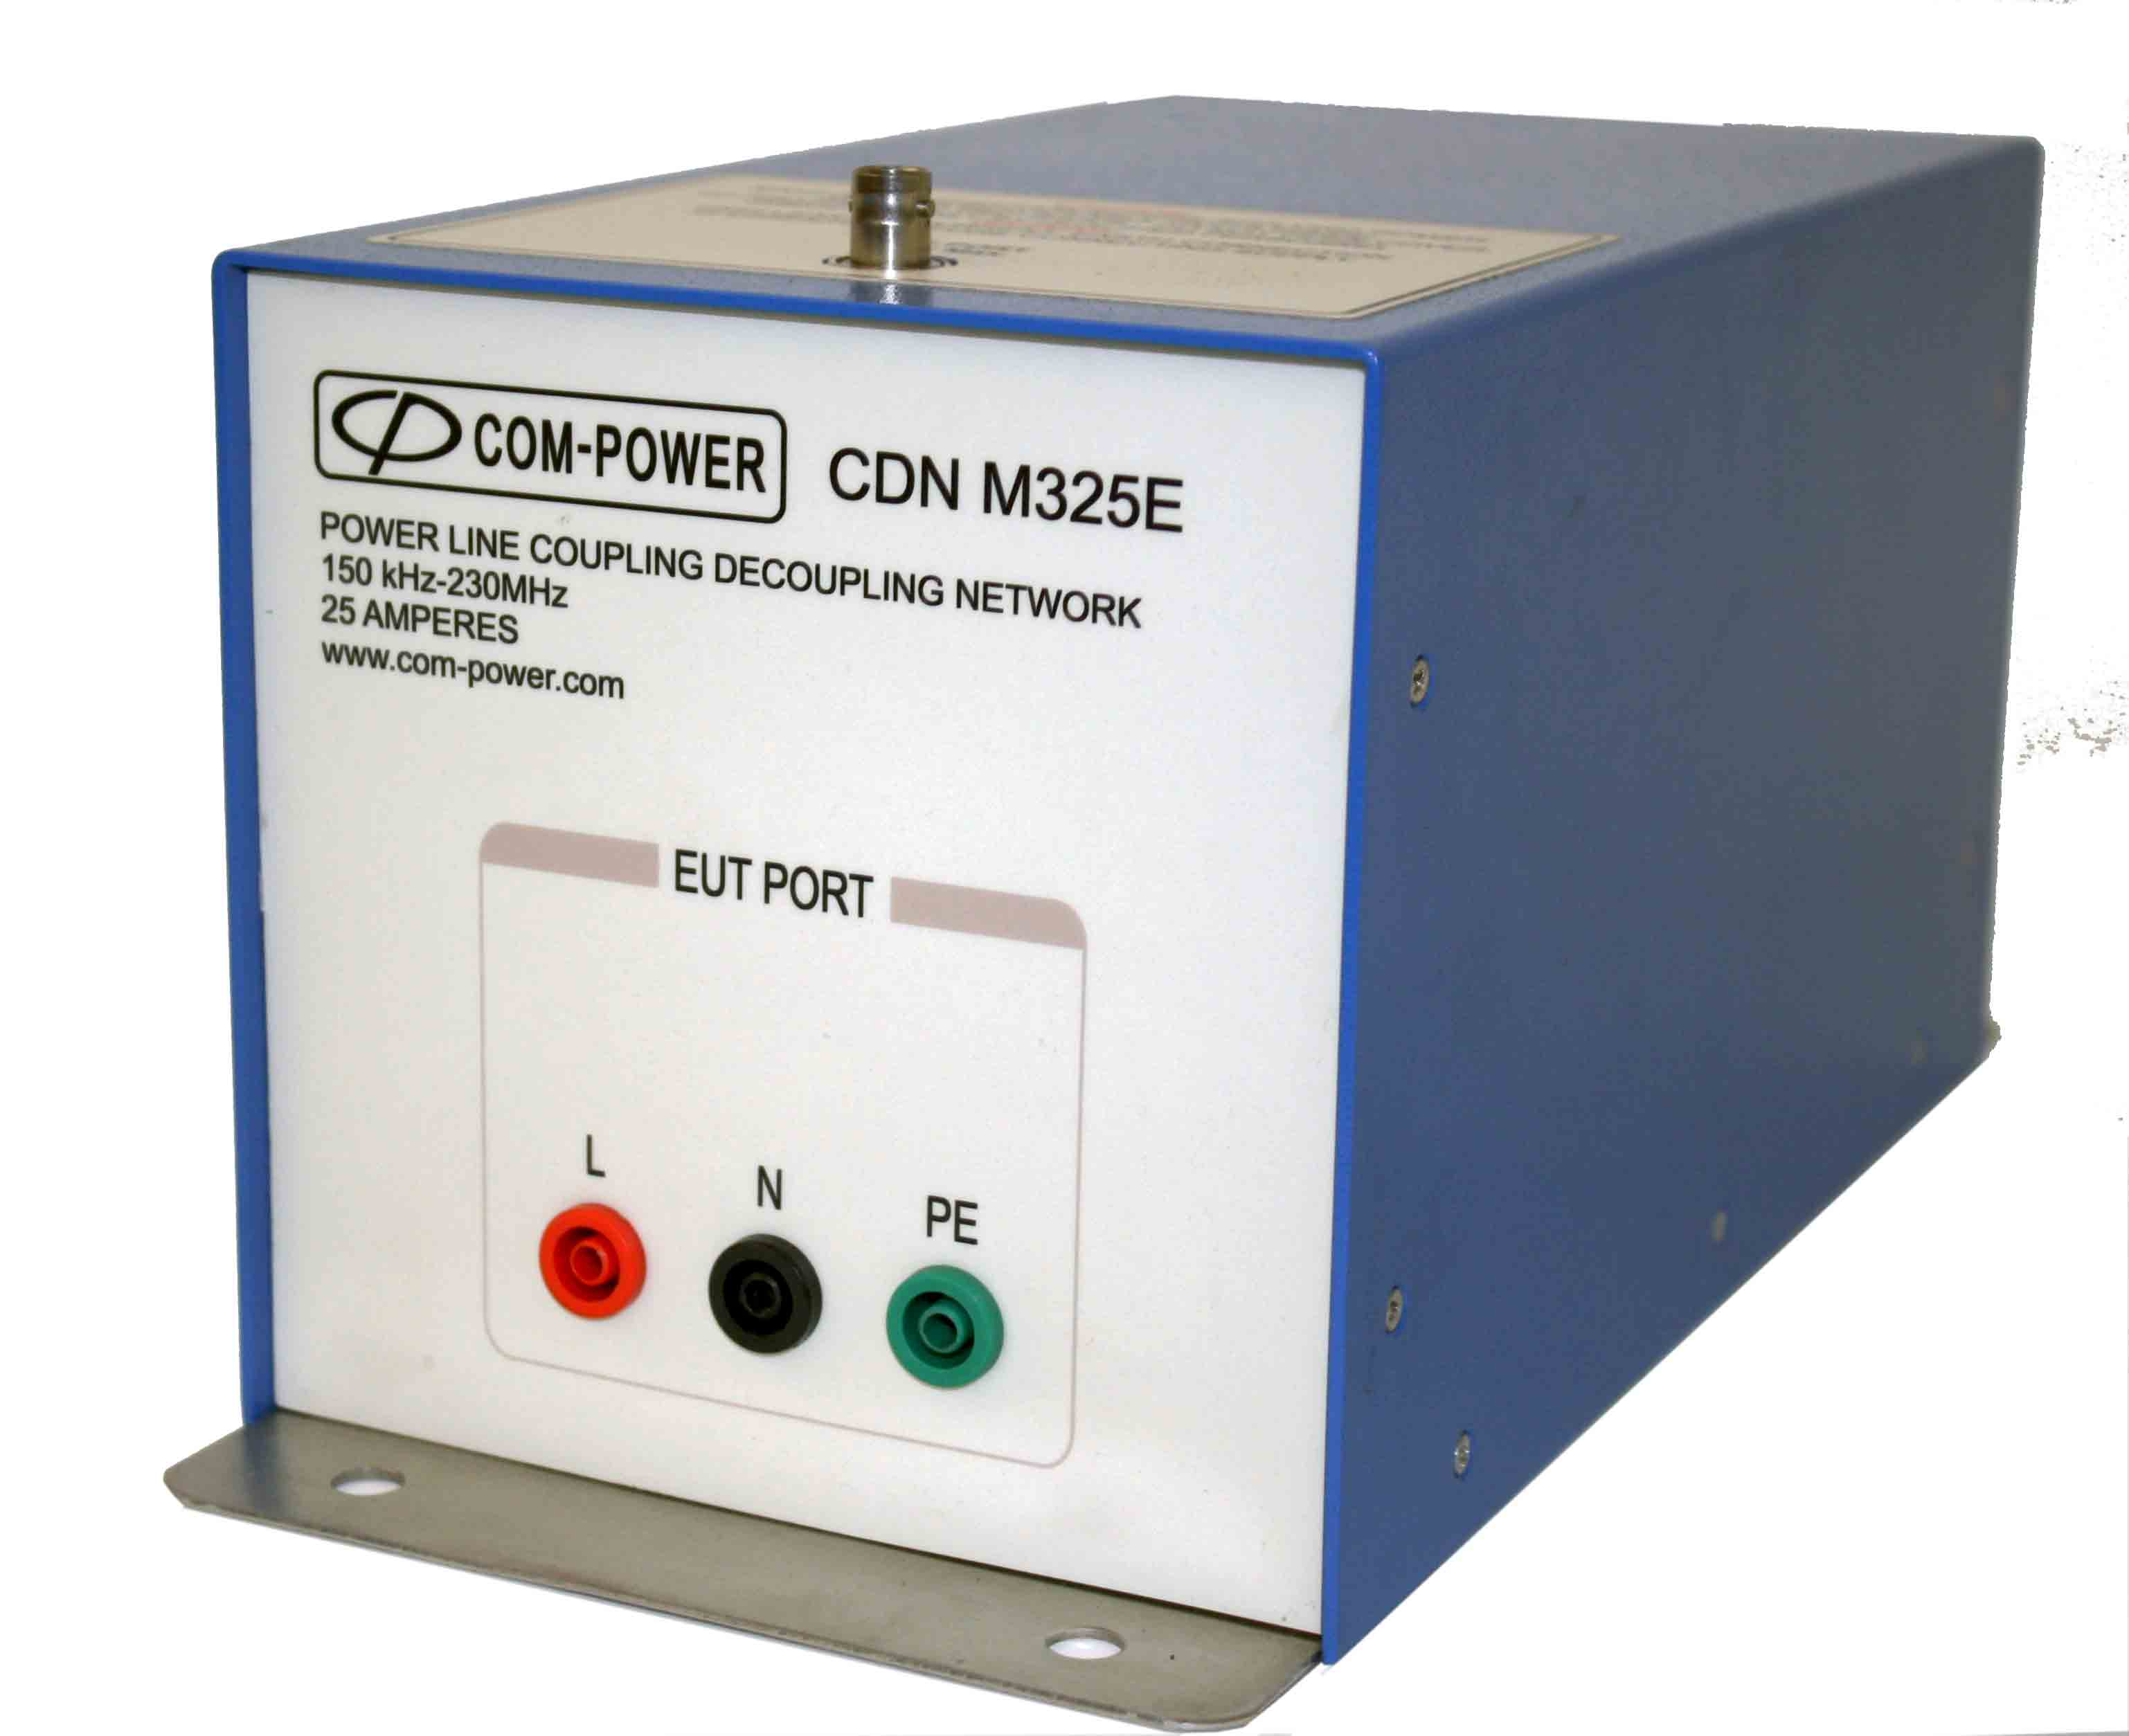 CDN-M325E - Com-Power CDN Coupling Decoupling Networks